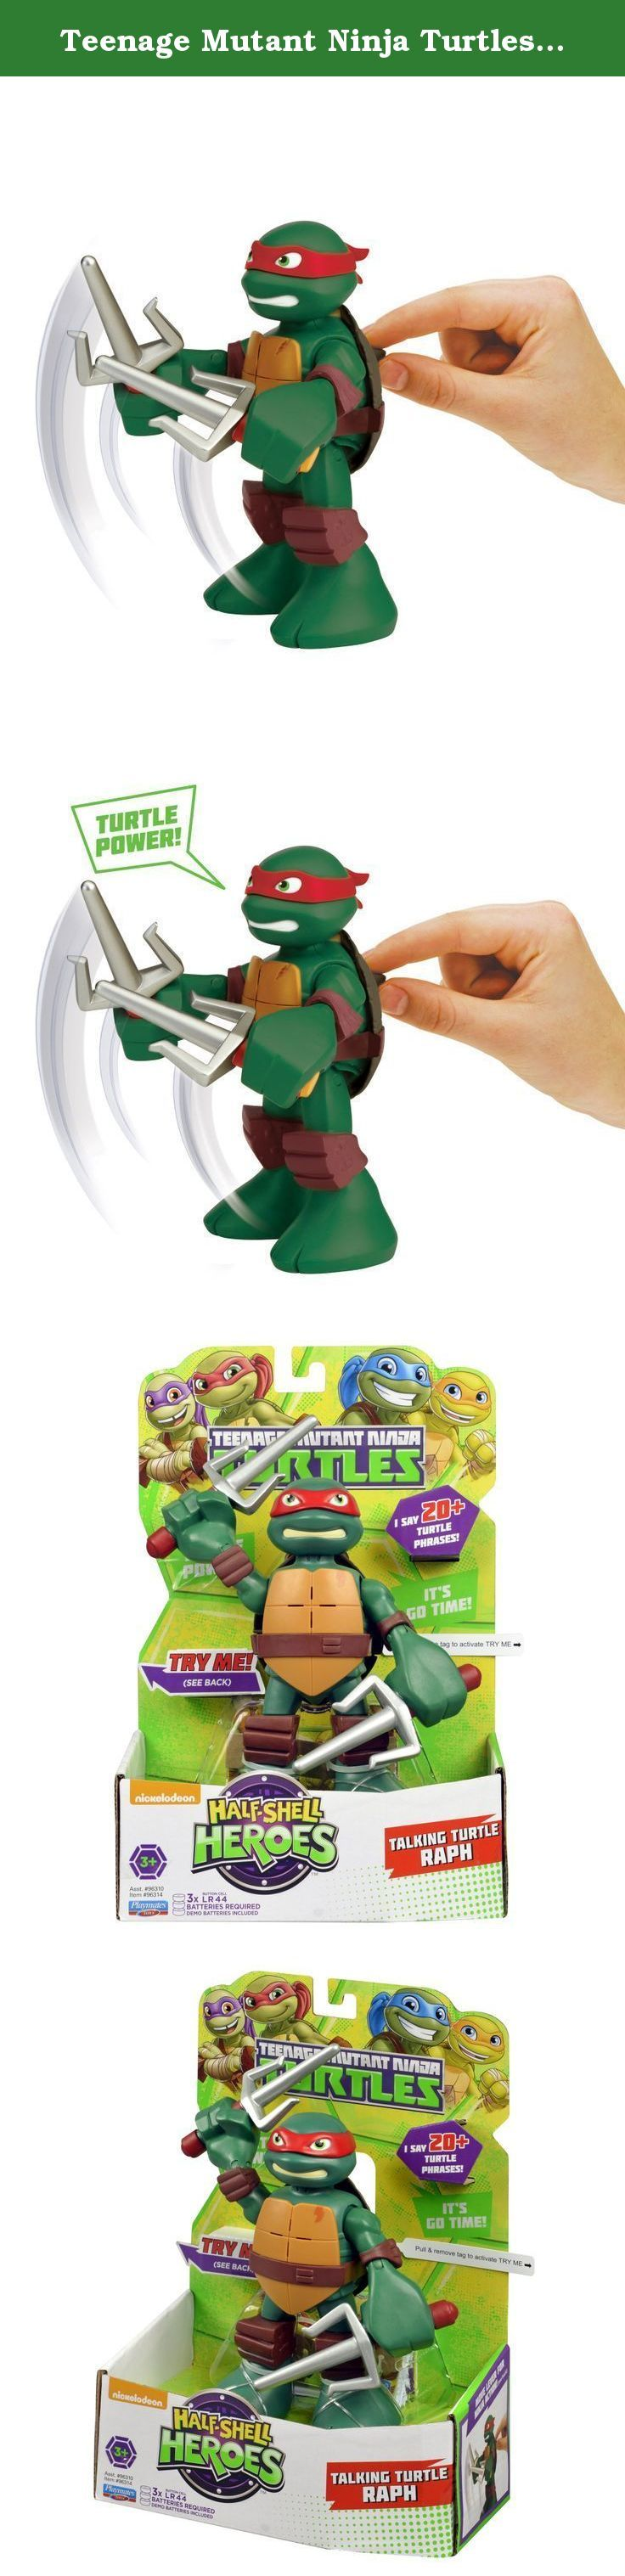 Teenage Mutant Ninja Turtles Pre-Cool Half Shell Heroes 6 Inch Raphael Talking Turtles Figure. Coming out of their shells for the very first time, the Half-Shell Heroes are ready for non-stop ninja adventure! You can join the fun-loving brothers in their pizza-fueled missions as they team up to mess with menacing mutants and stop the Shredder.